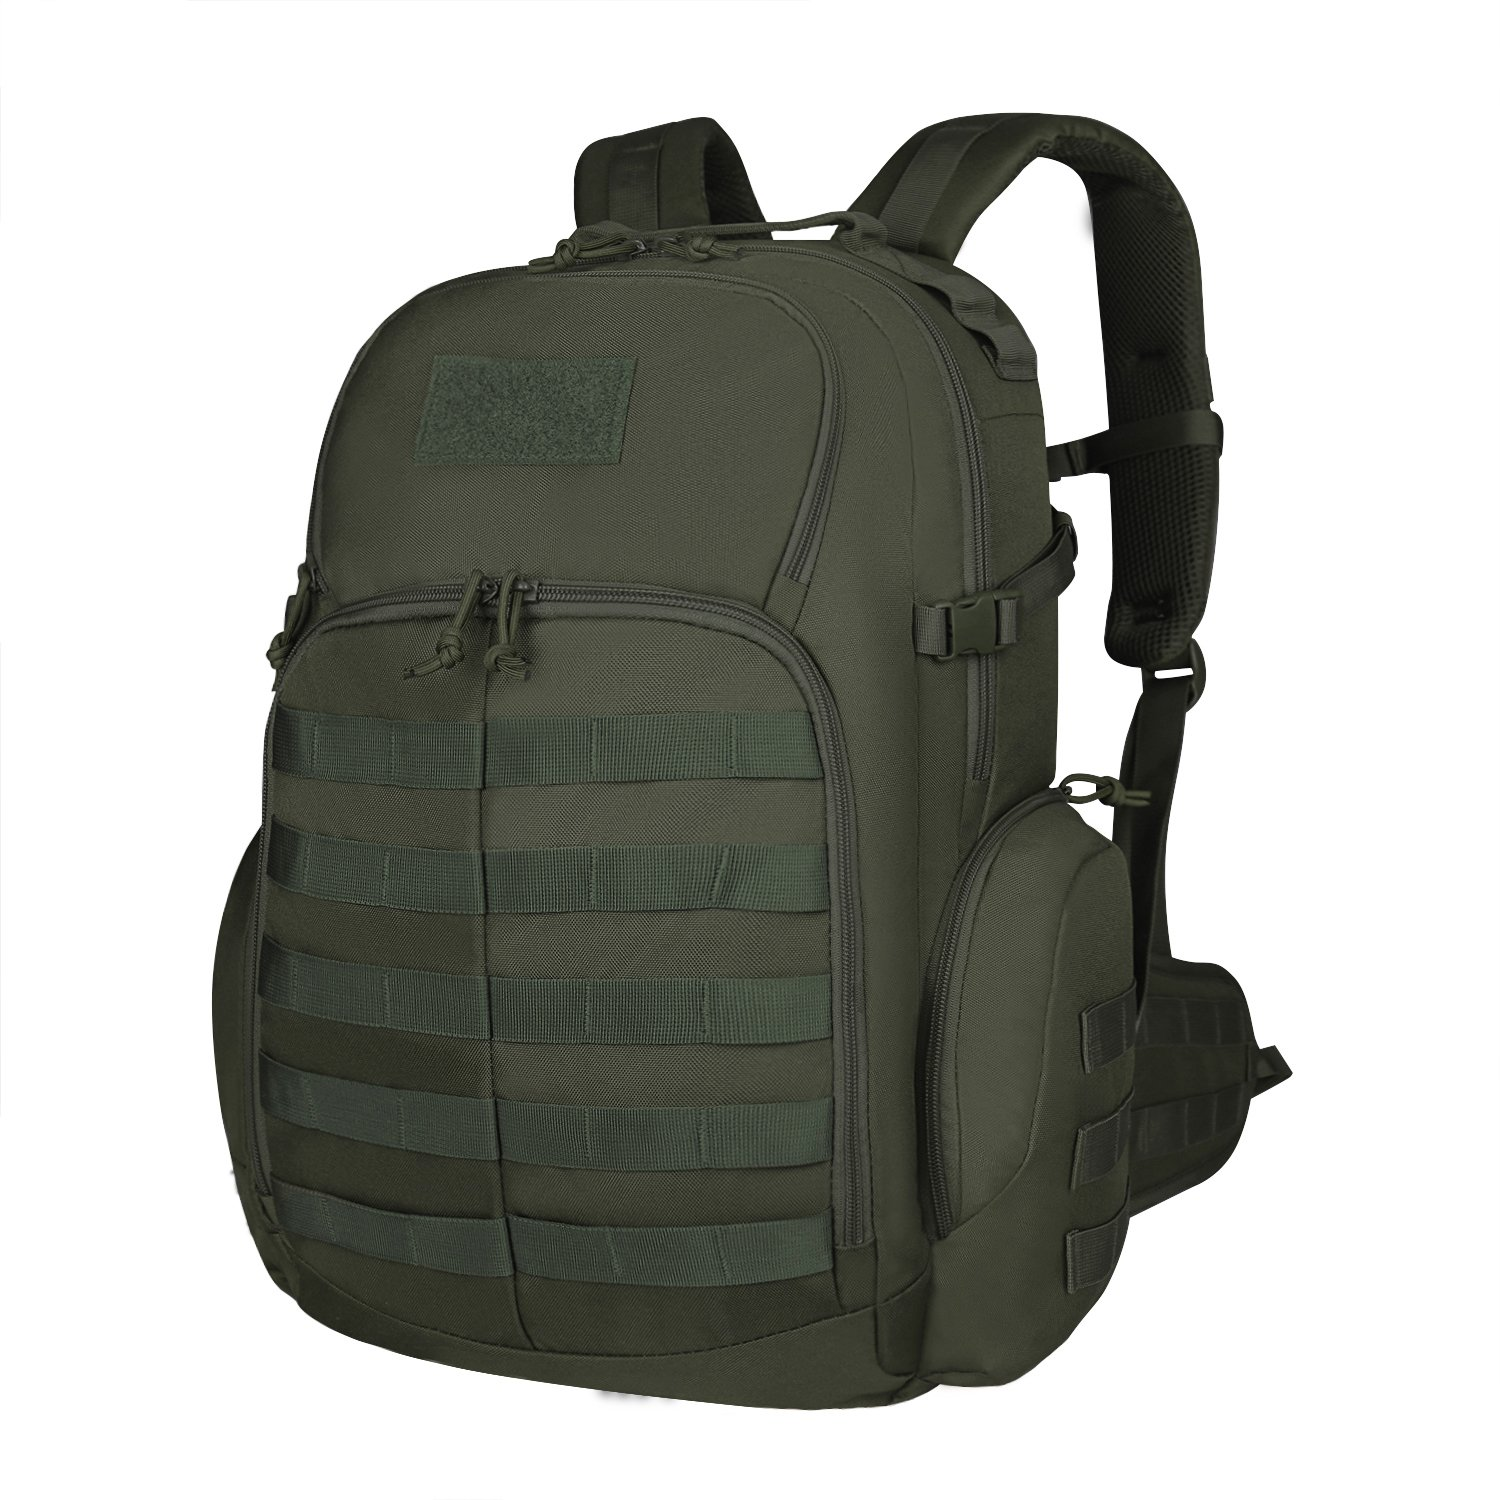 Mardingtop 35L Tactical Backpacks Molle Hiking daypacks for Camping Hiking Military Traveling M6232-Army Green